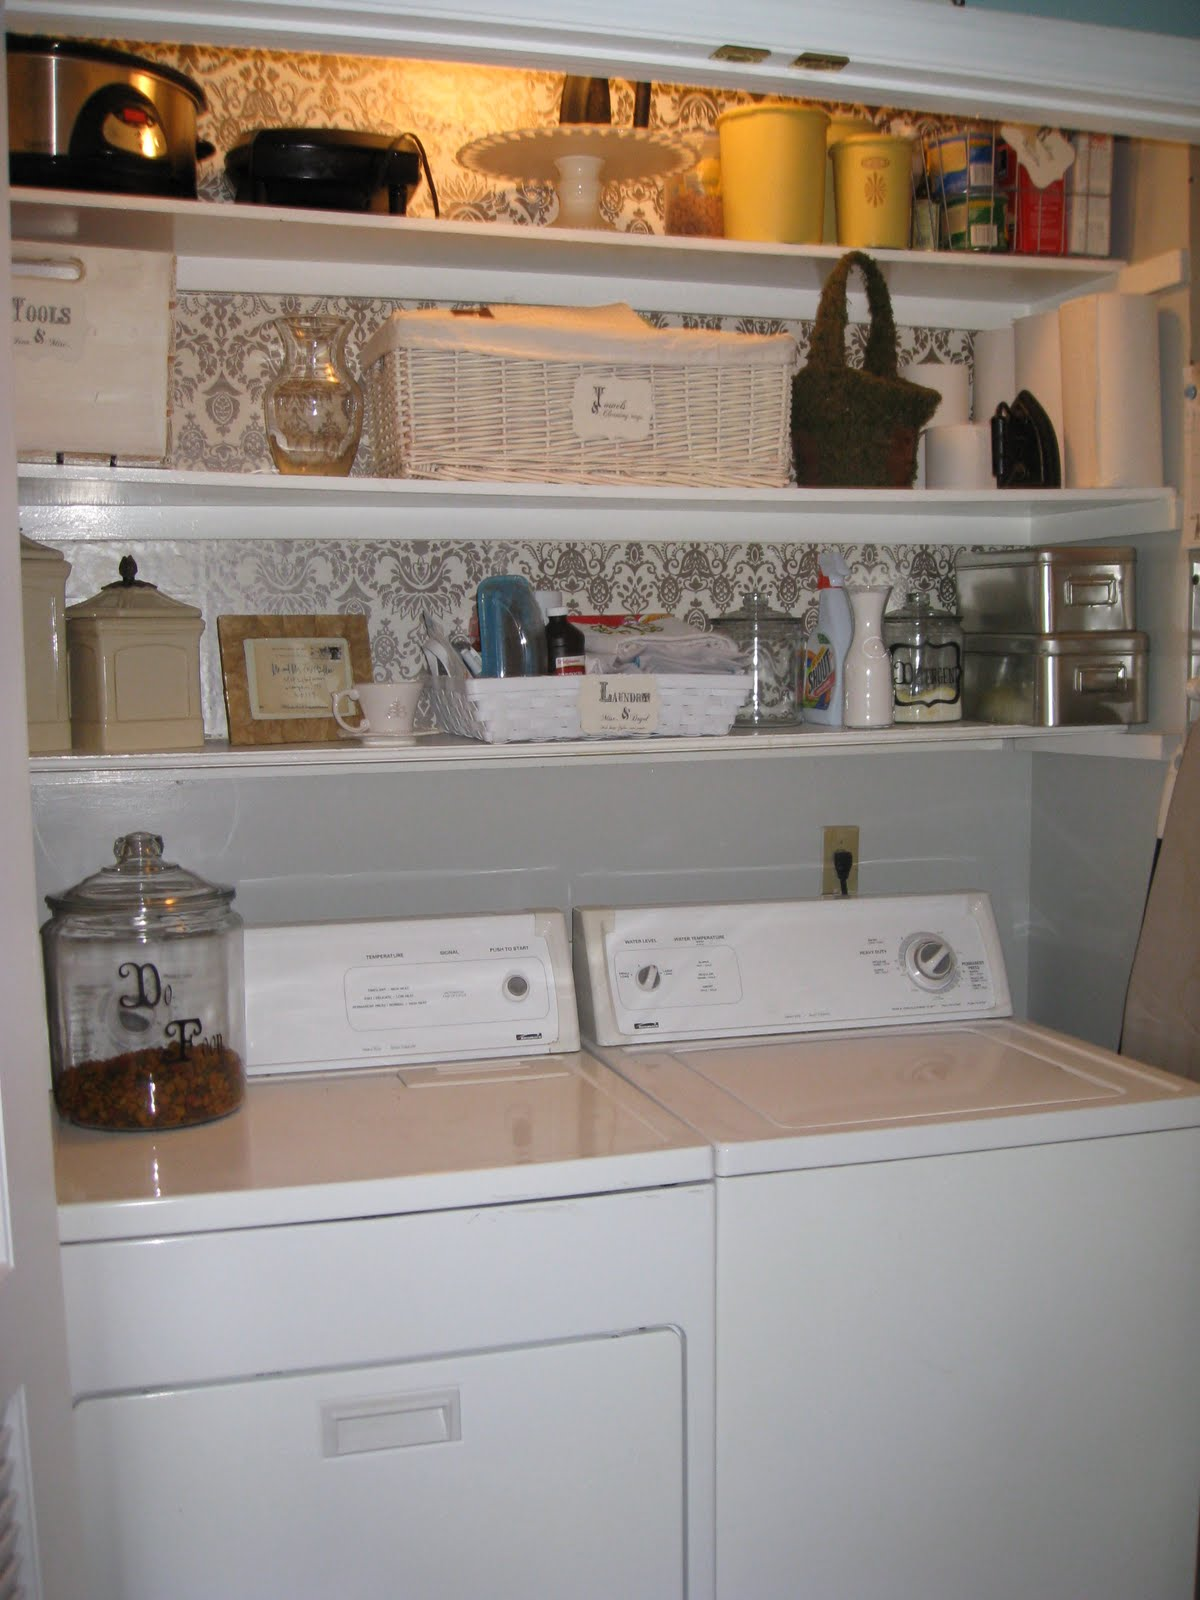 Remodelaholic | Laundry Room Design and Decorating Idea on laundry room diy, laundry room with stackable washer and dryer, laundry room accessories, laundry room signs, laundry room wall ideas, laundry room sayings, laundry room folding shelf, laundry craft room, laundry room sink, laundry room in bathroom, laundry room makeover, laundry room construction ideas, laundry room wallpaper ideas, laundry room drying rack, laundry room design, basement laundry room ideas, laundry room paint schemes, laundry room glass doors, laundry room cabinets, laundry room curtains,